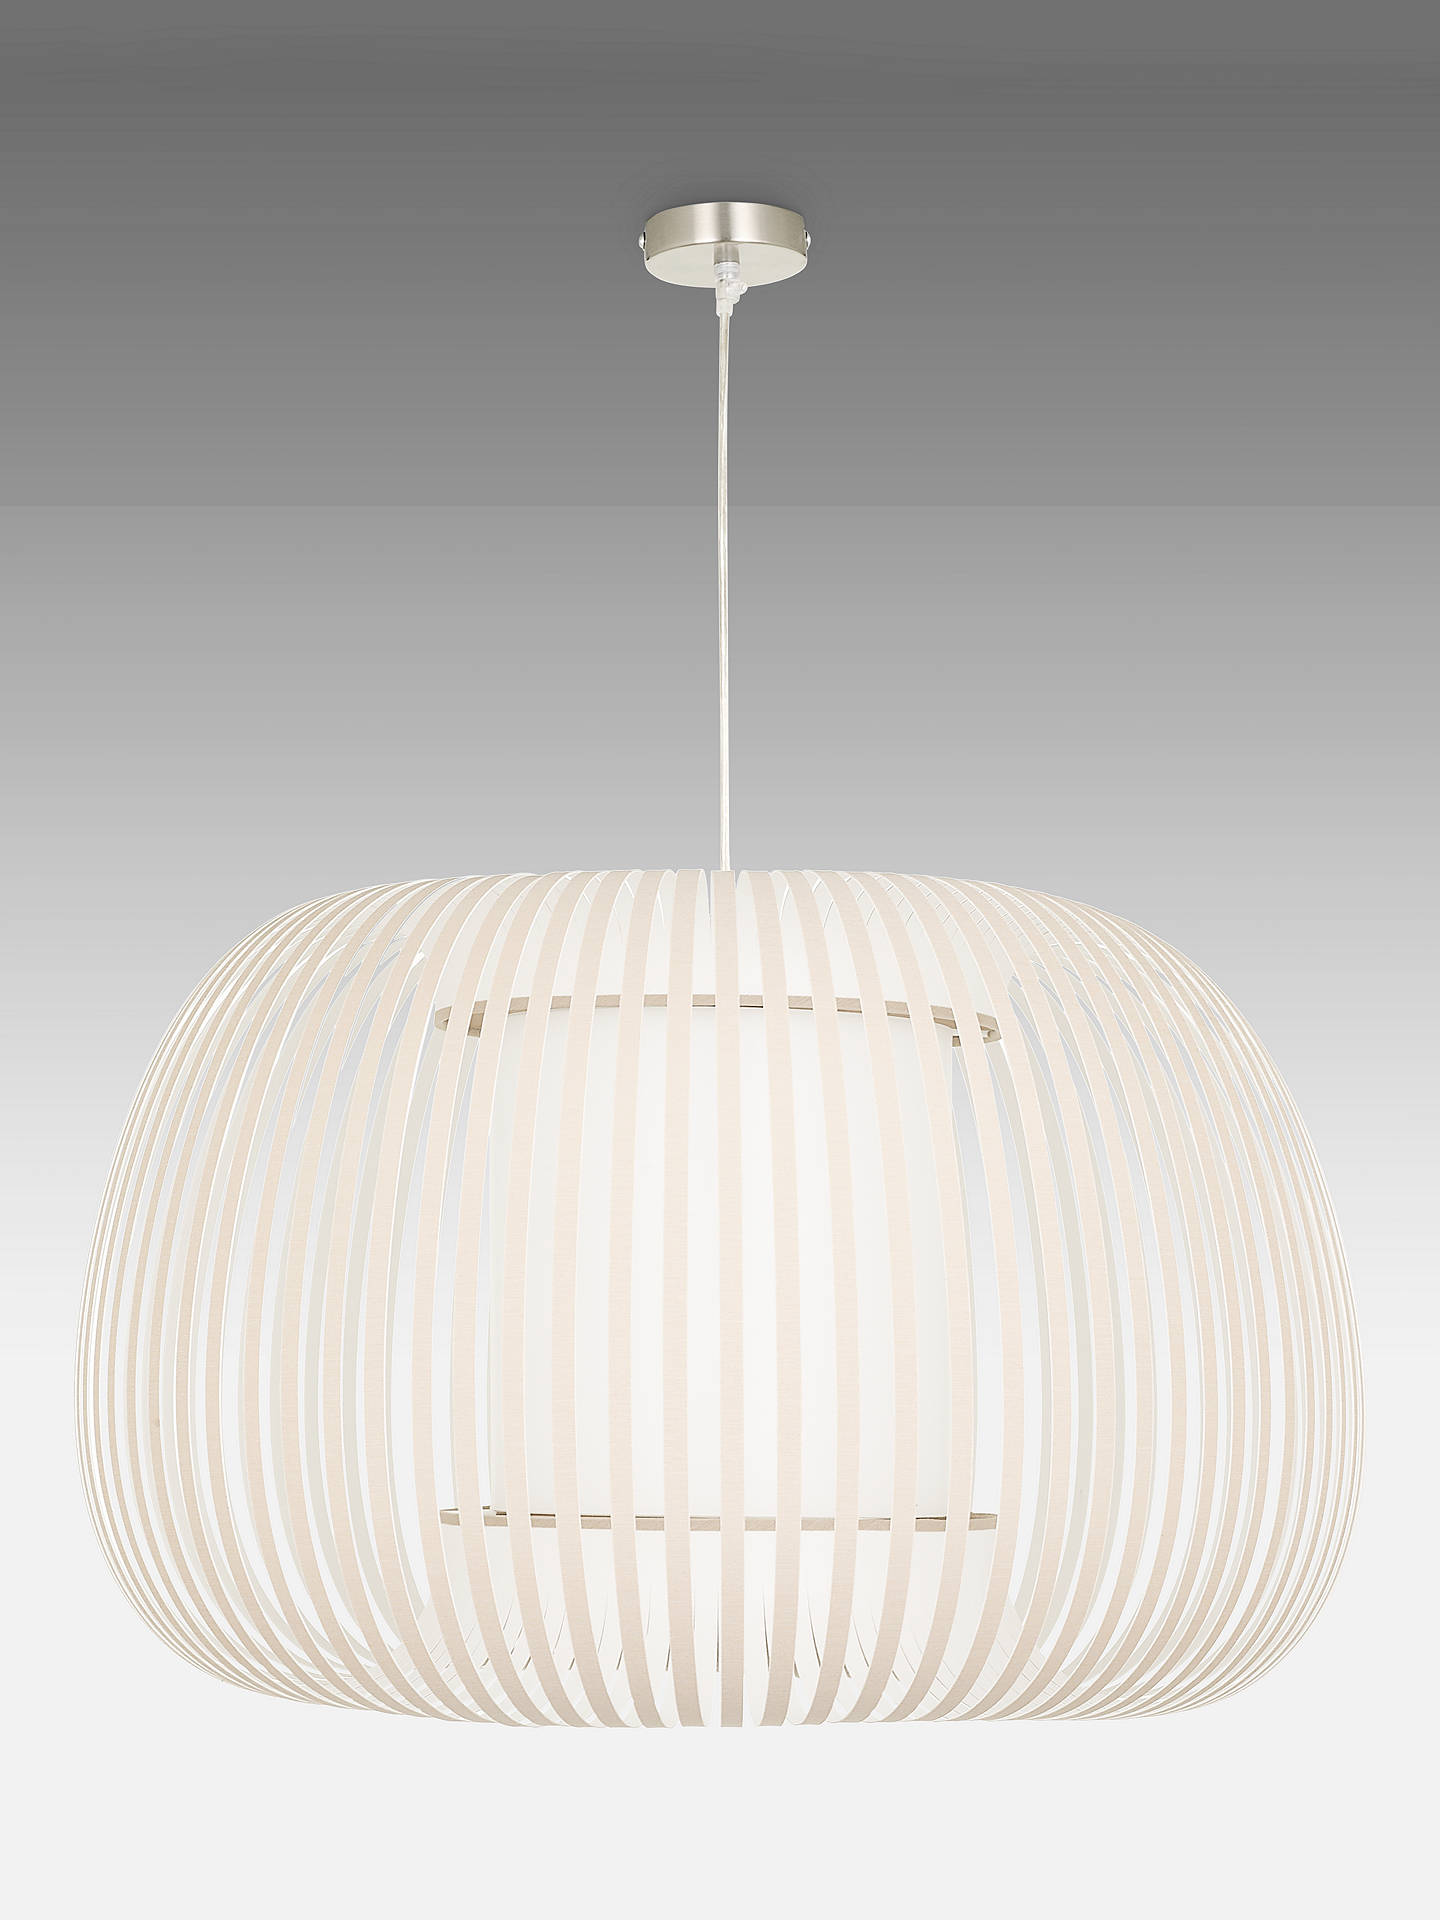 john-lewis-&-partners-harmony-large-ribbon-ceiling-light,-natural by john-lewis-&-partners